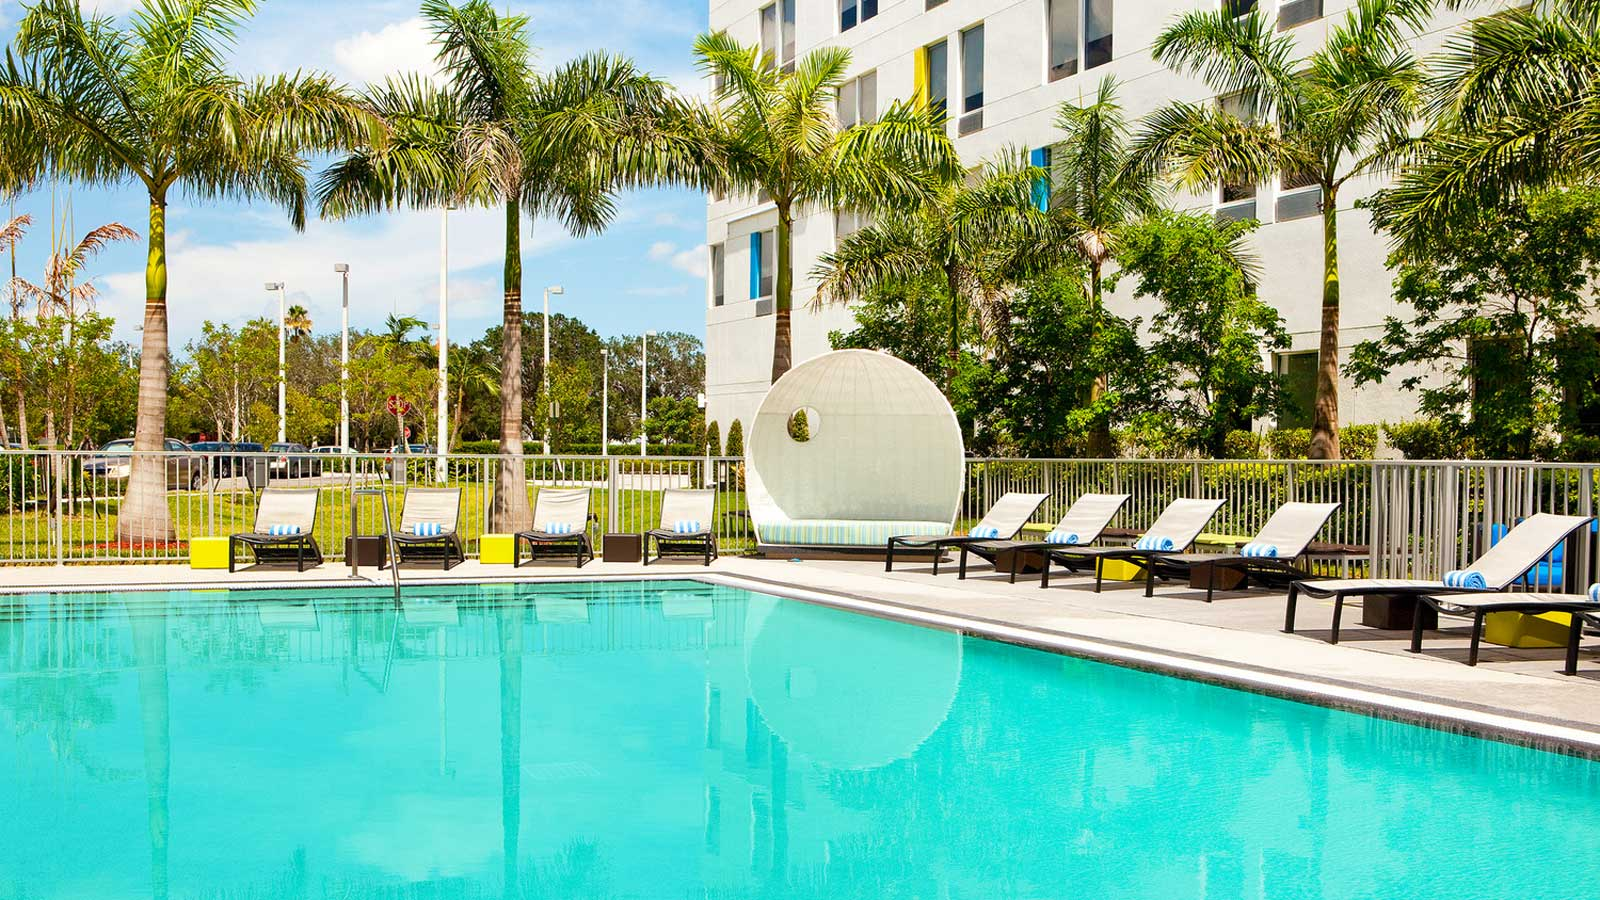 aloft_miami_piscina